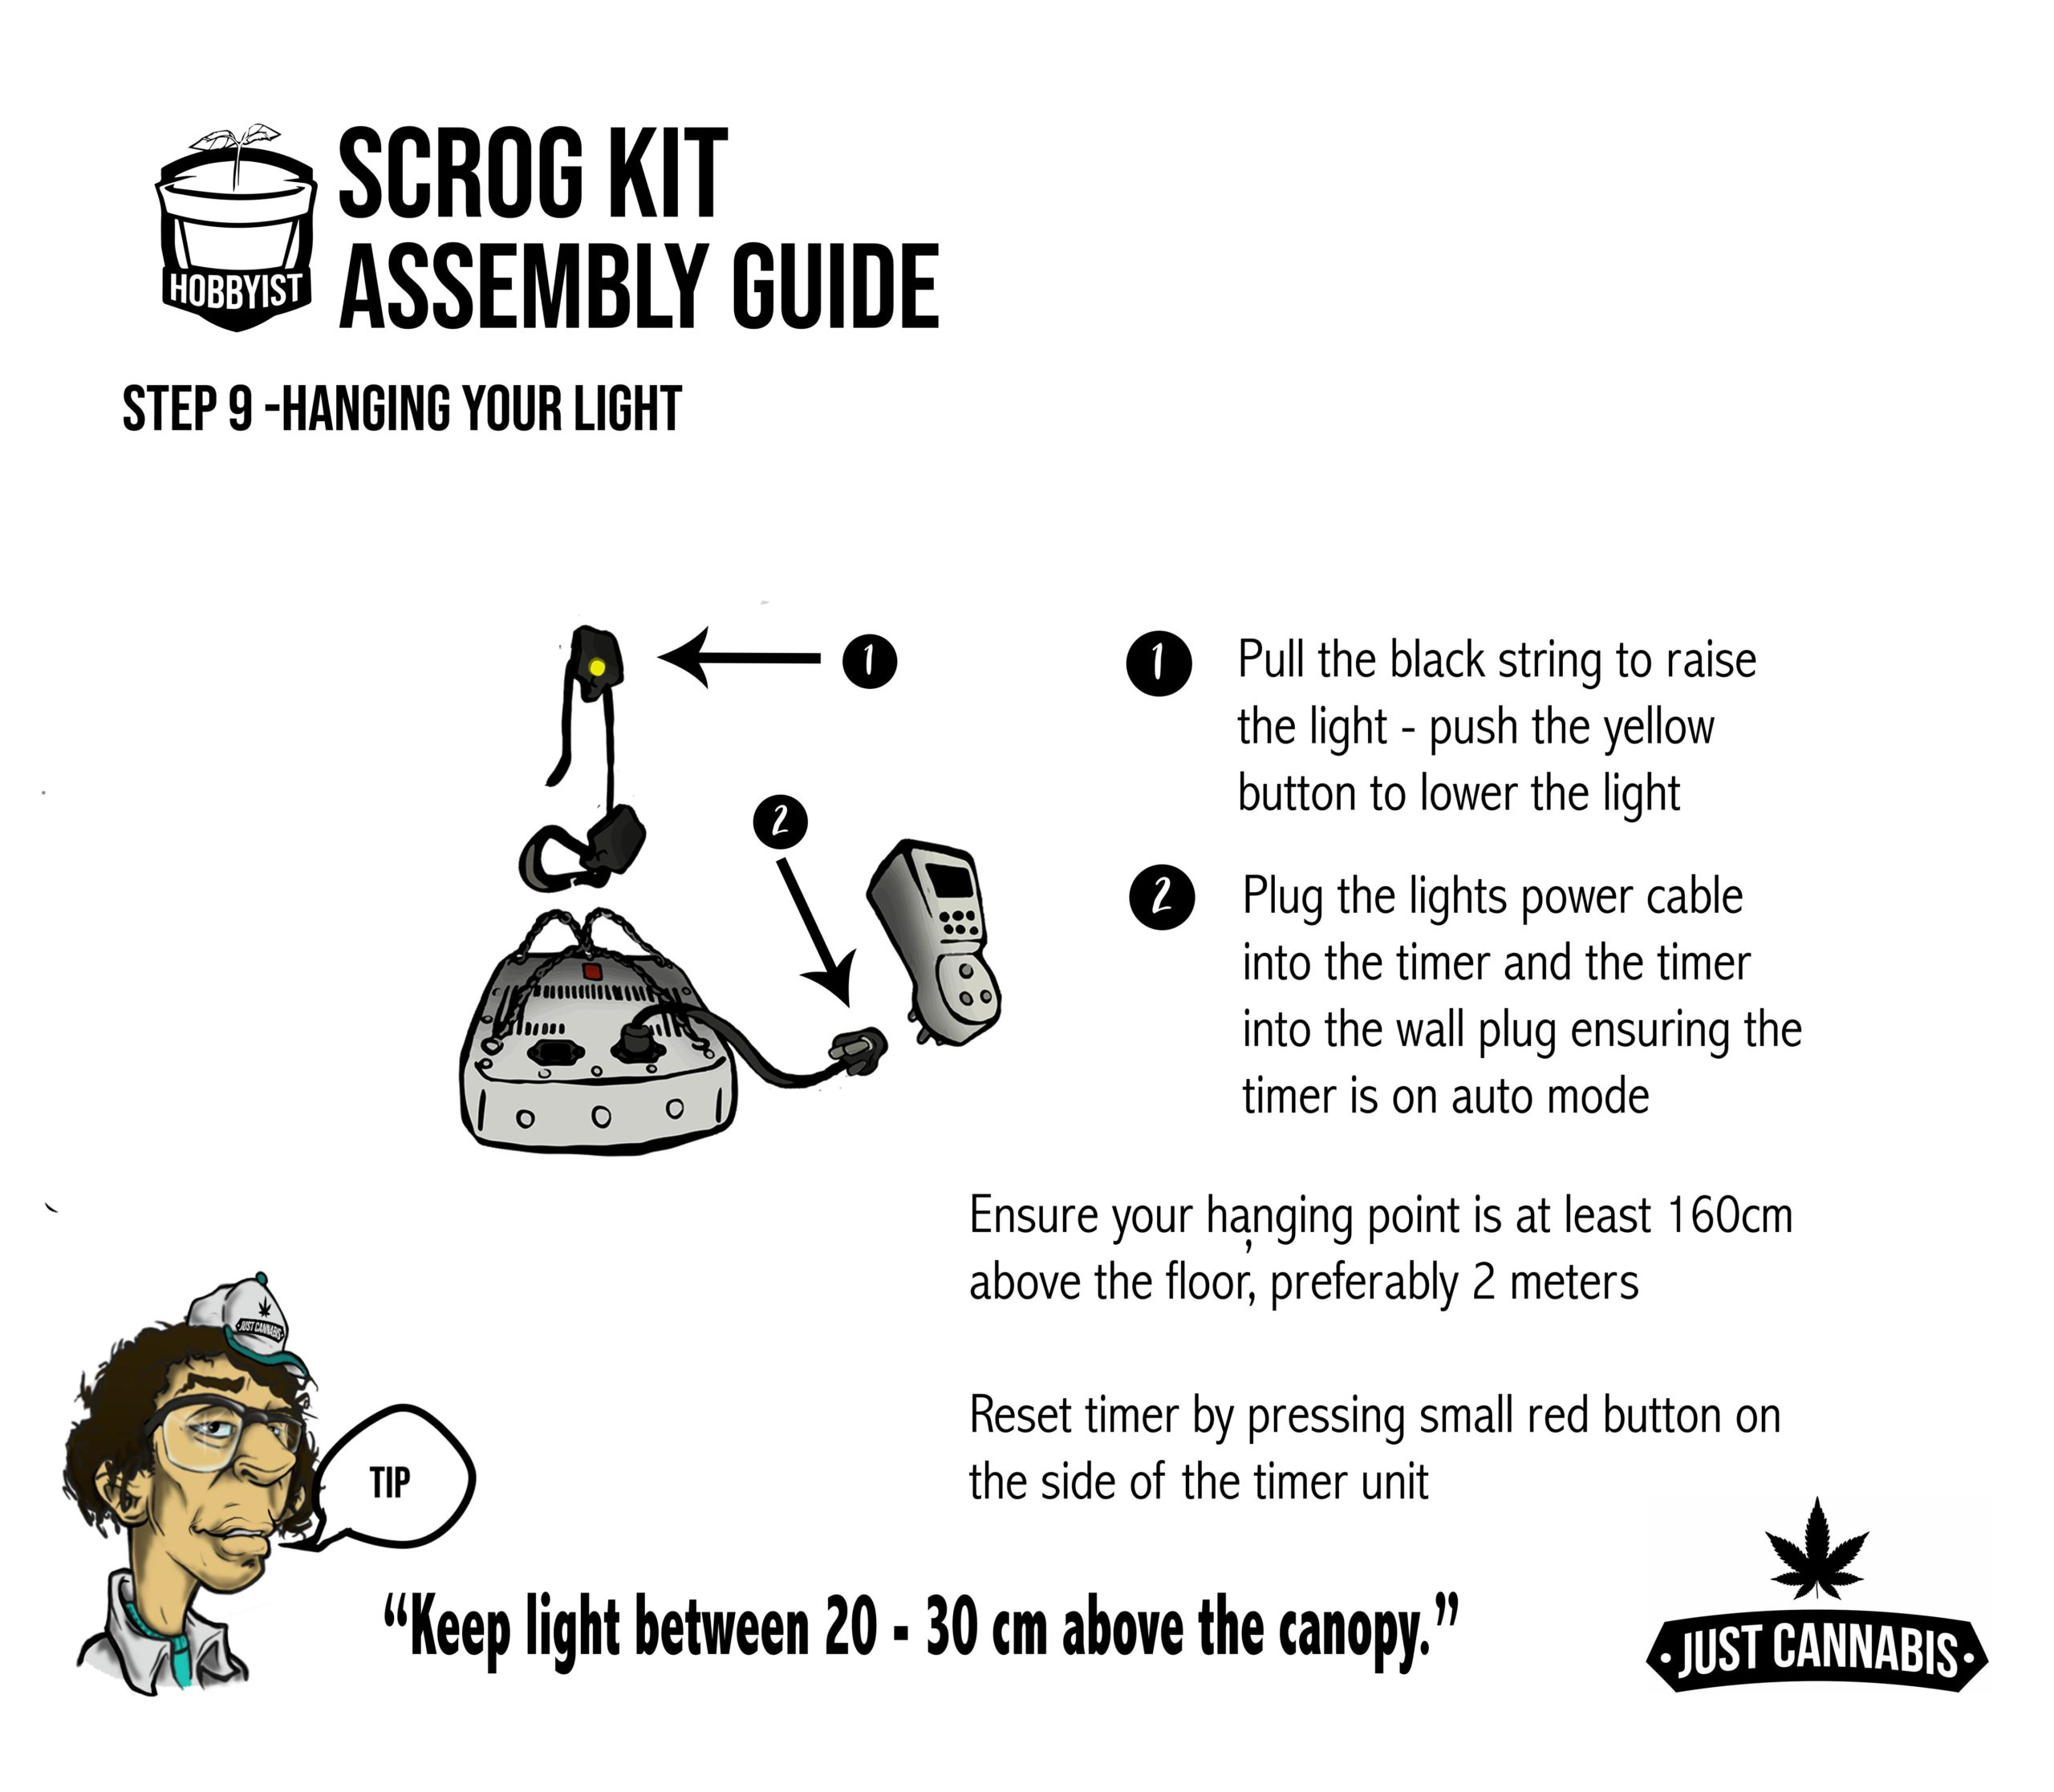 assembly guide scrog kit page 9 copy